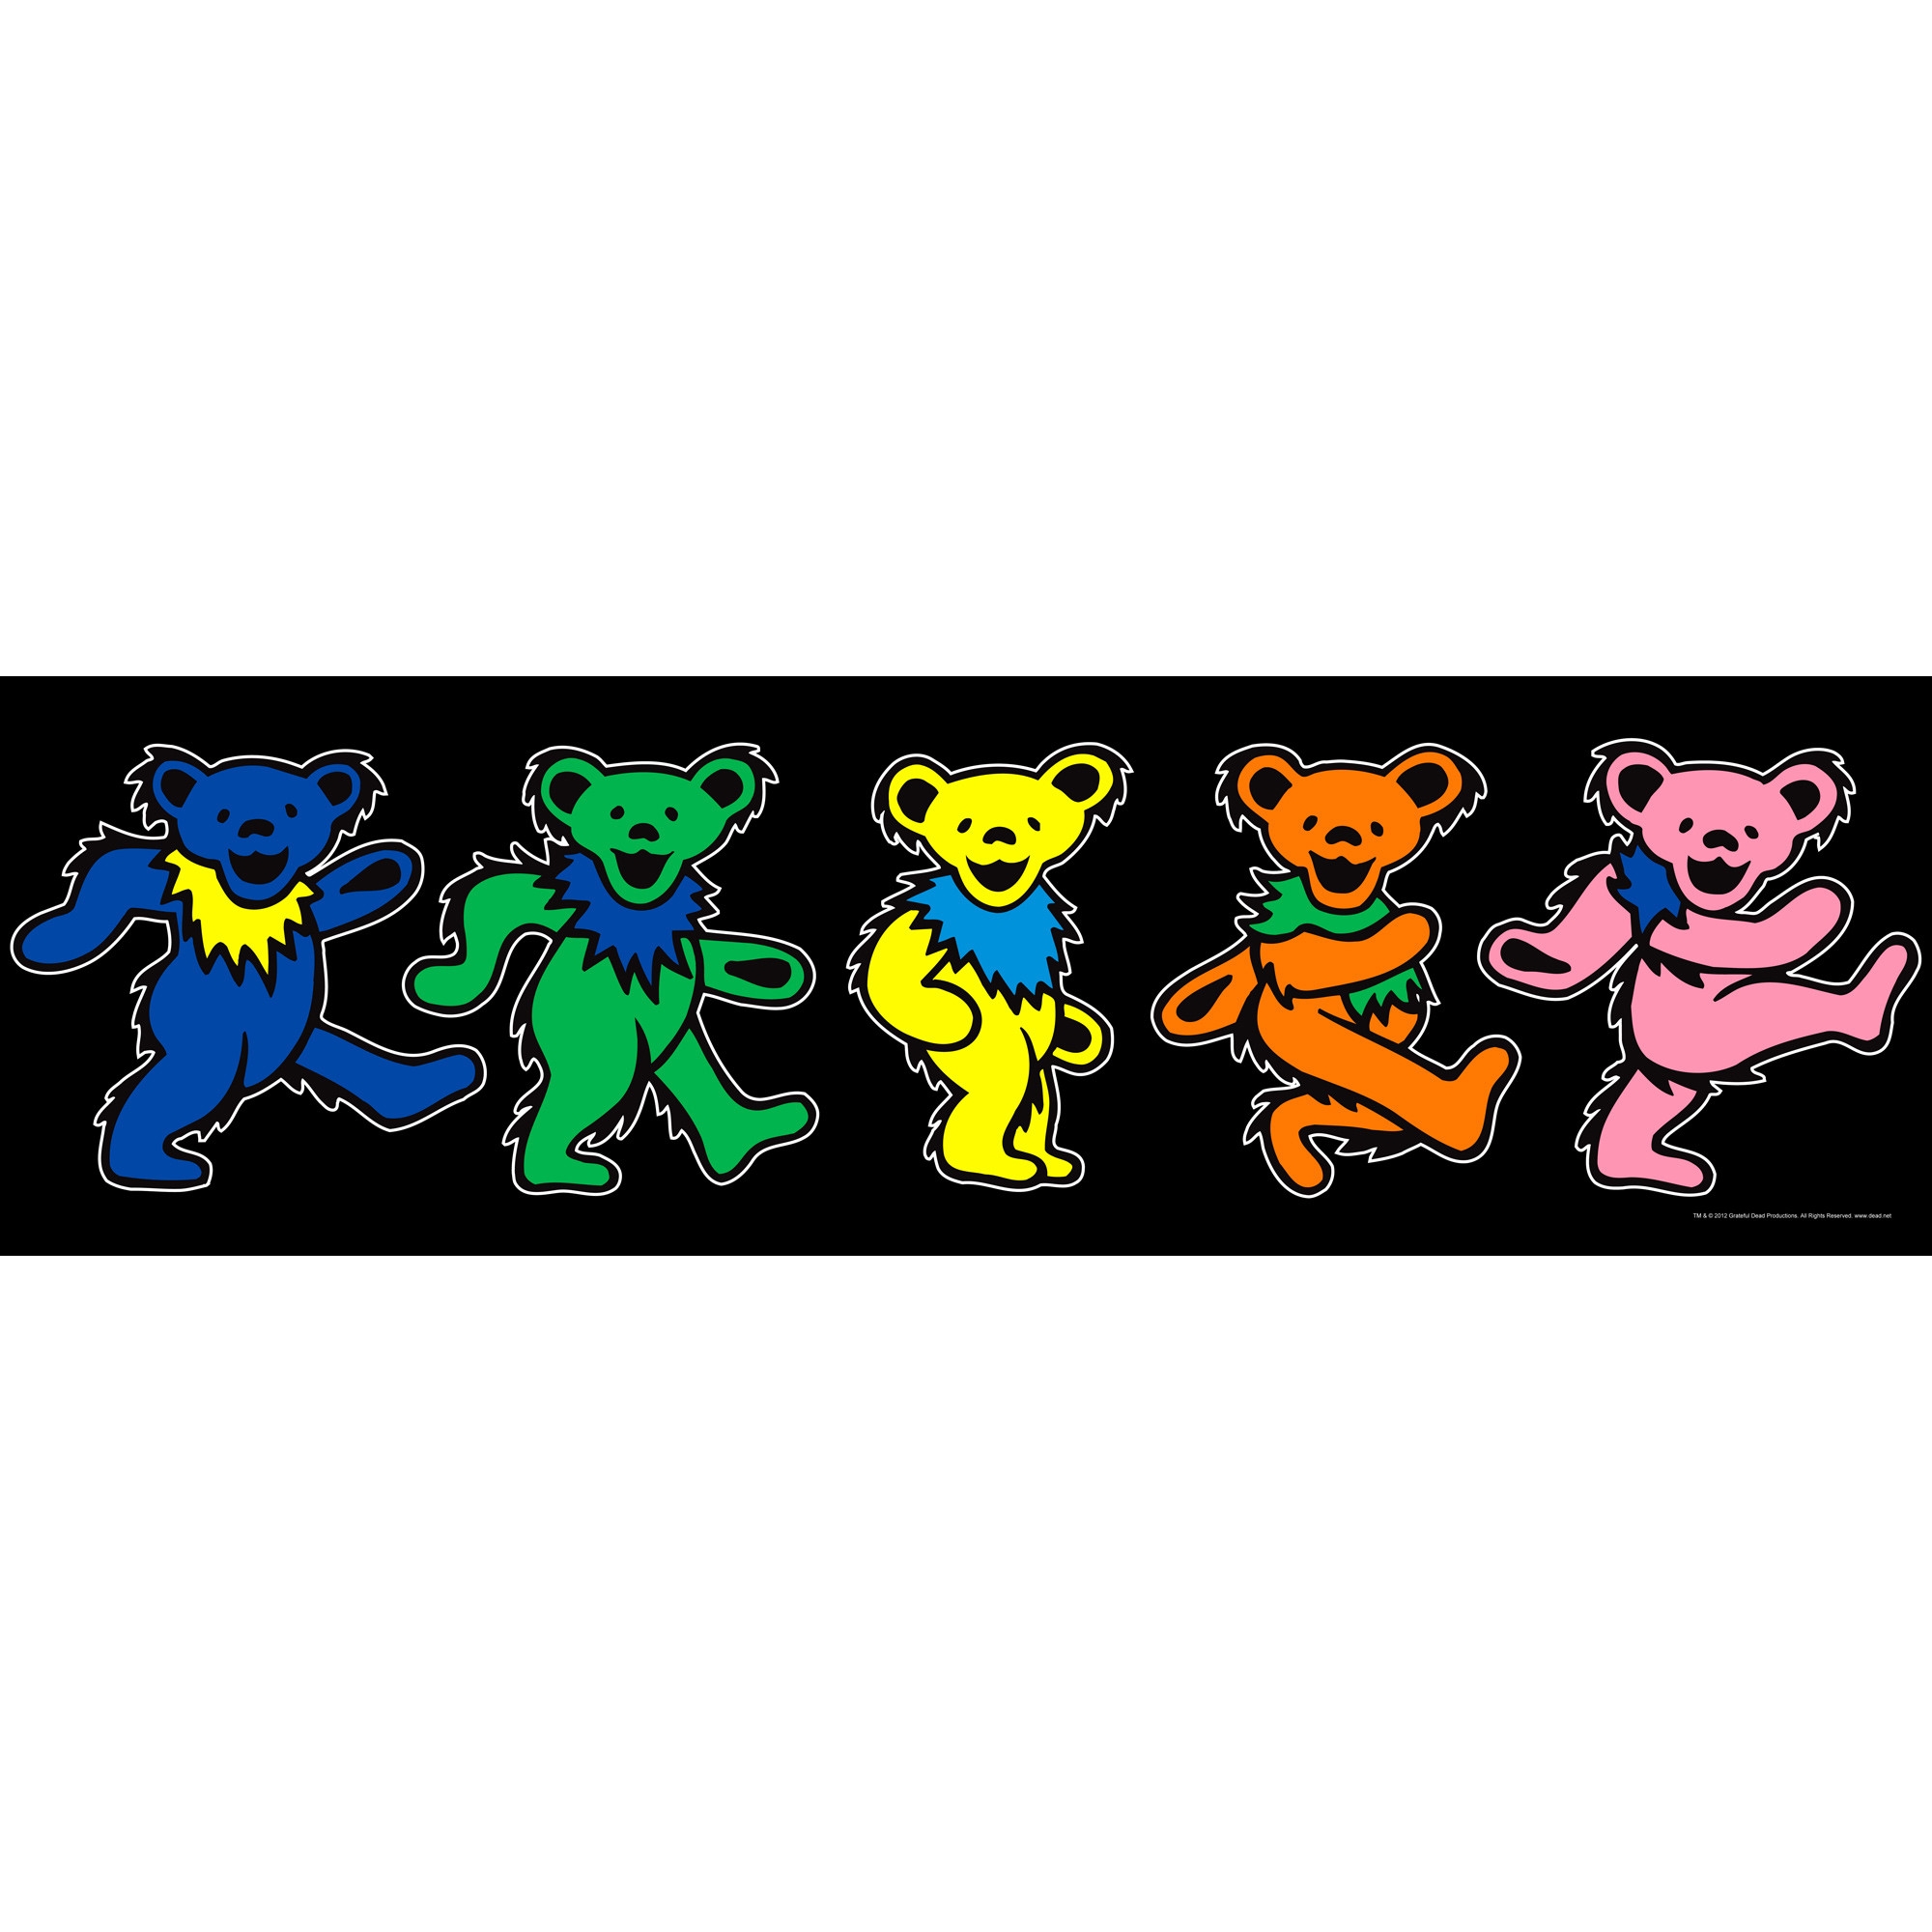 Description: The colorful, classic Grateful Dead dancing bears come to .